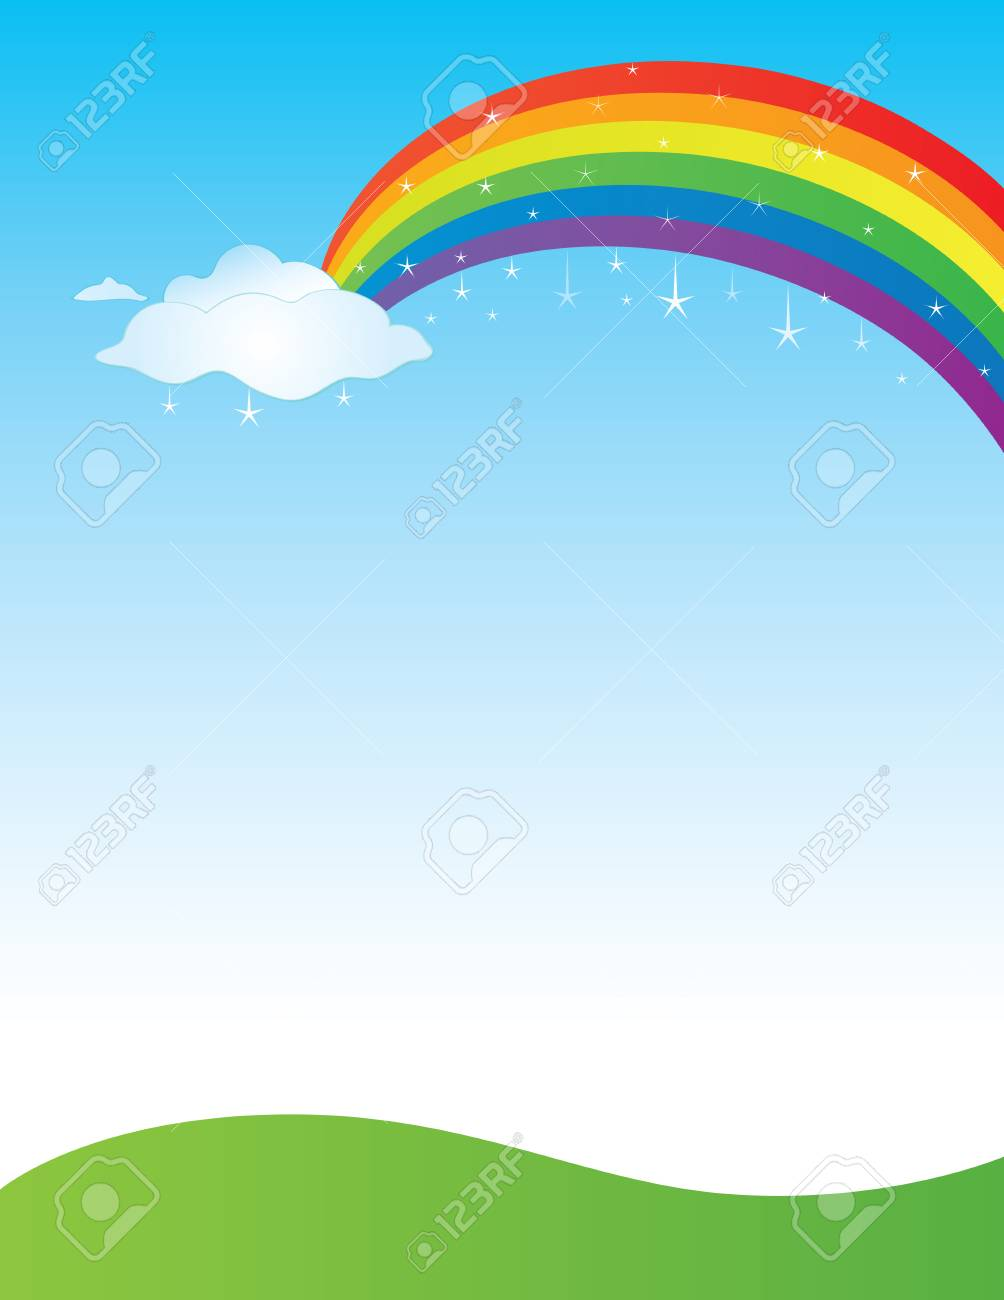 rainbow background template royalty free cliparts vectors and